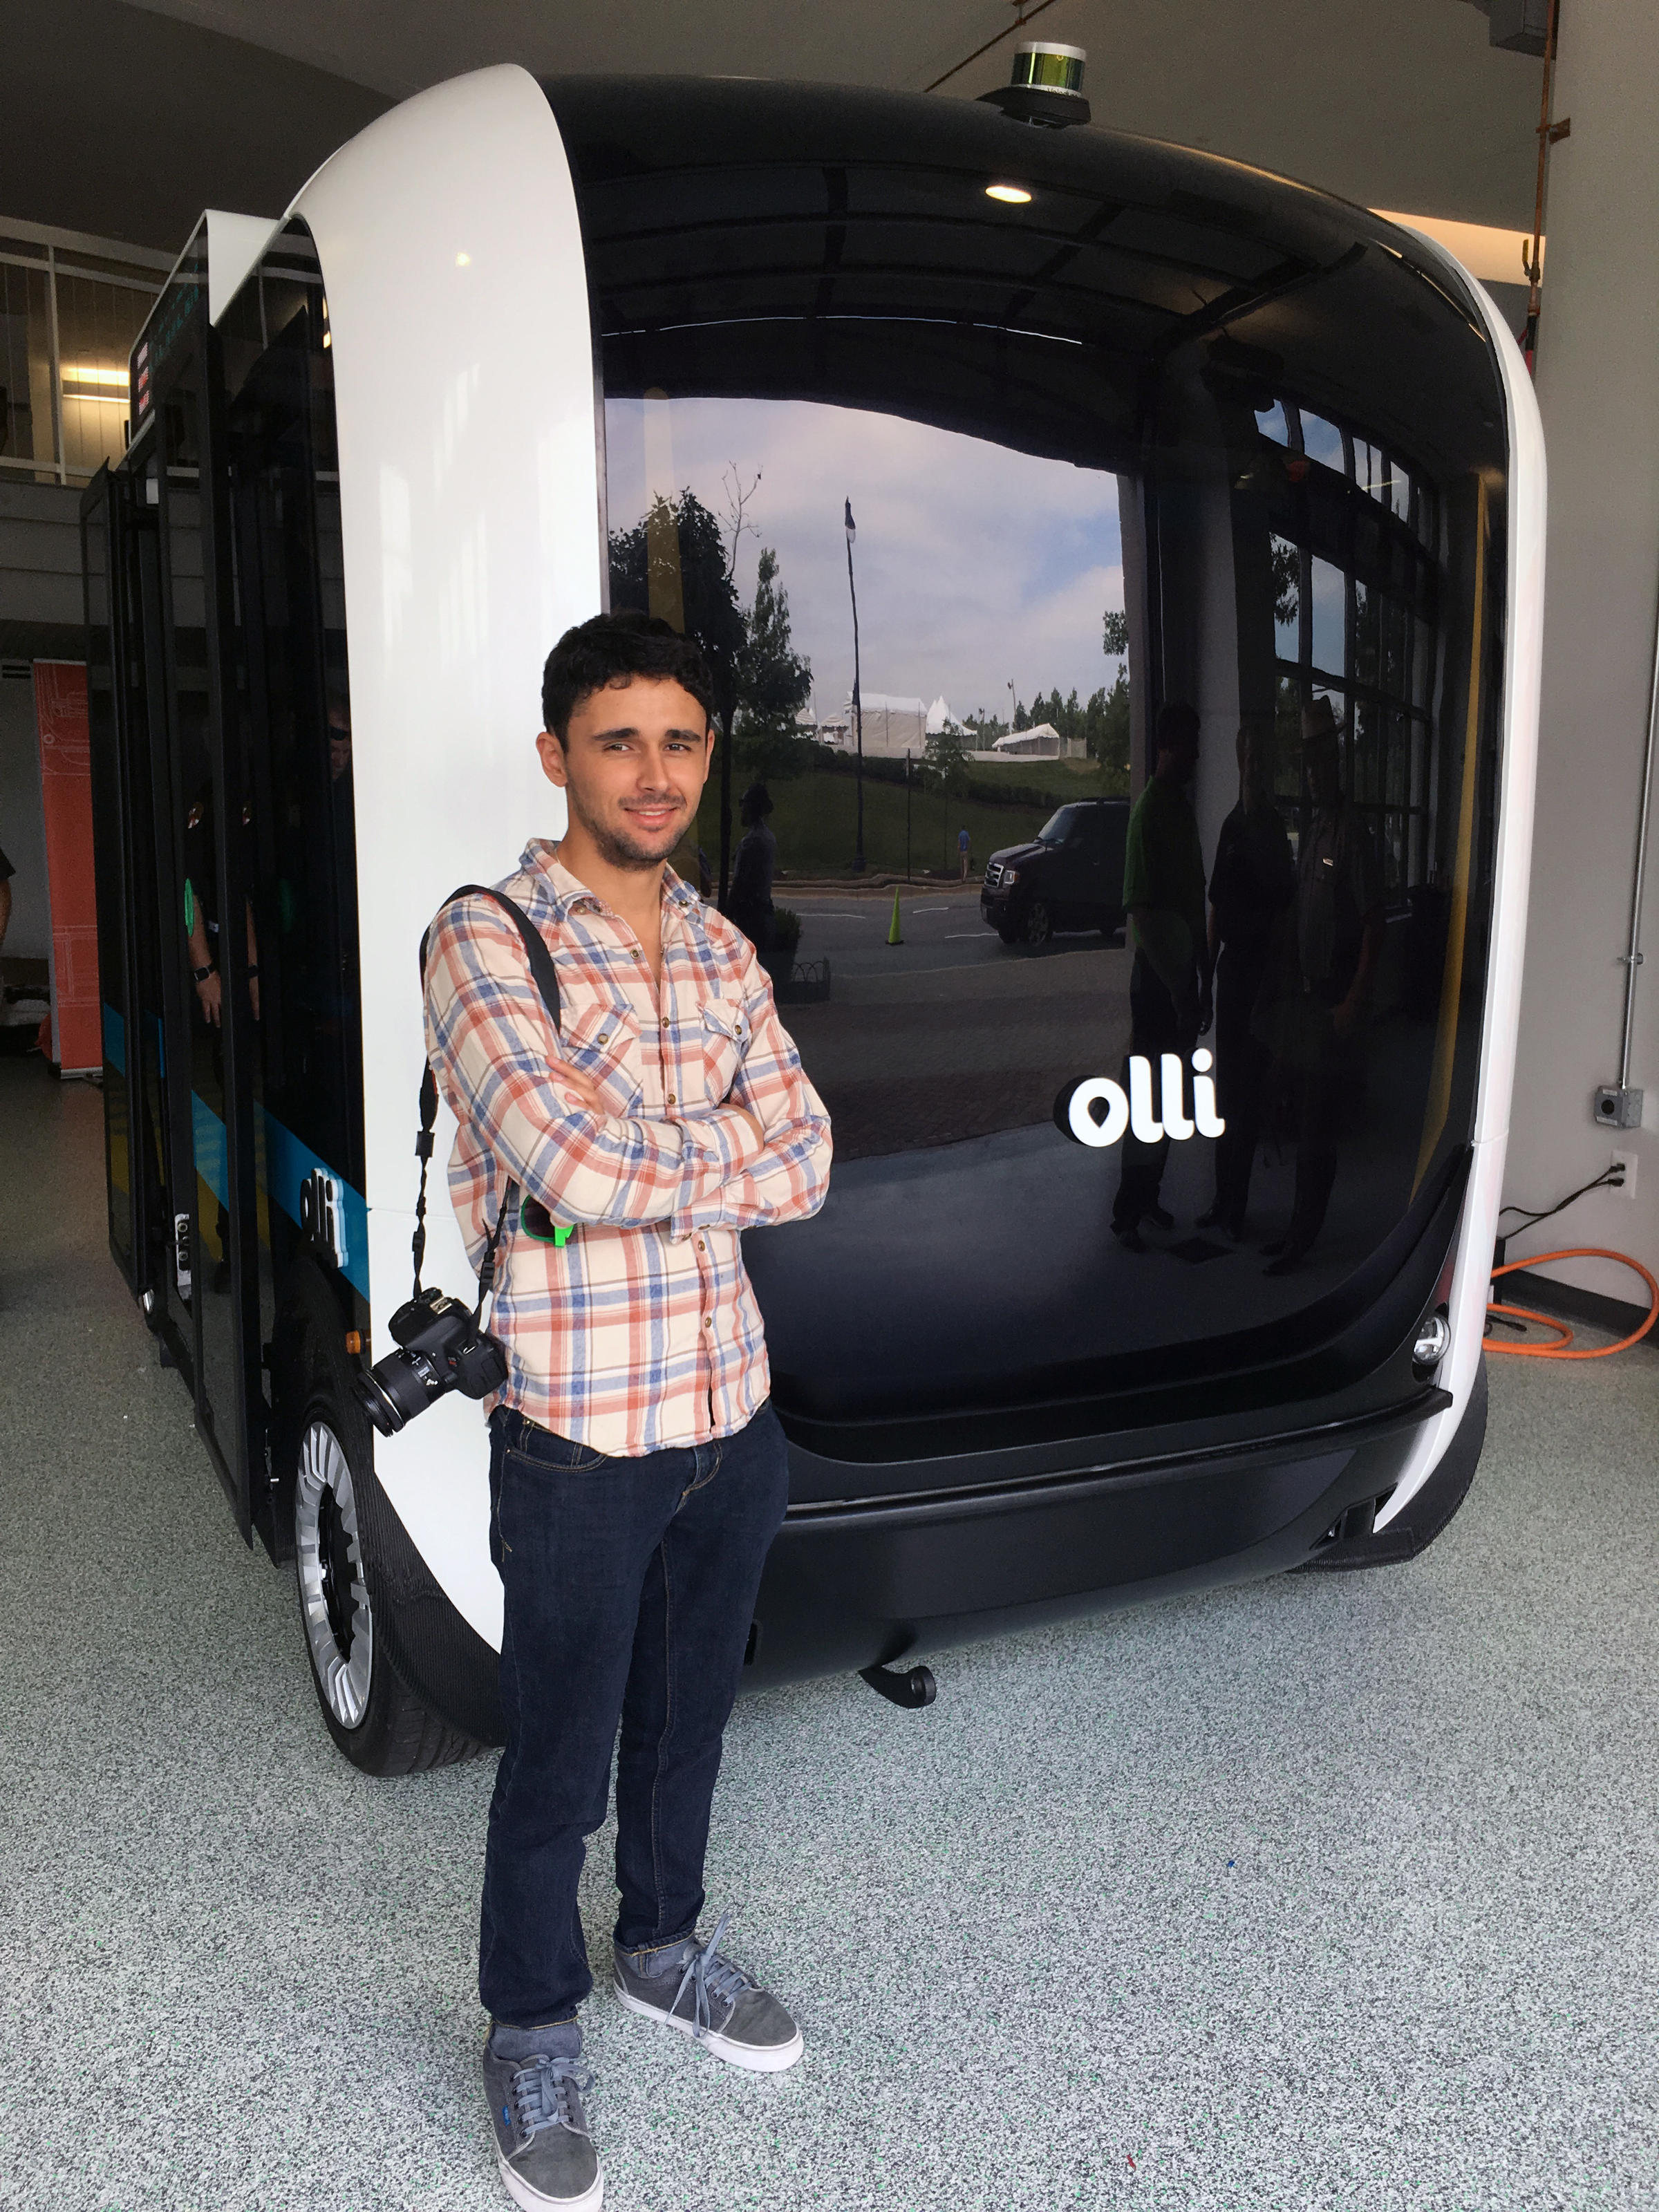 A 24 Year Old Designed A Self Driving Minibus Maker Built